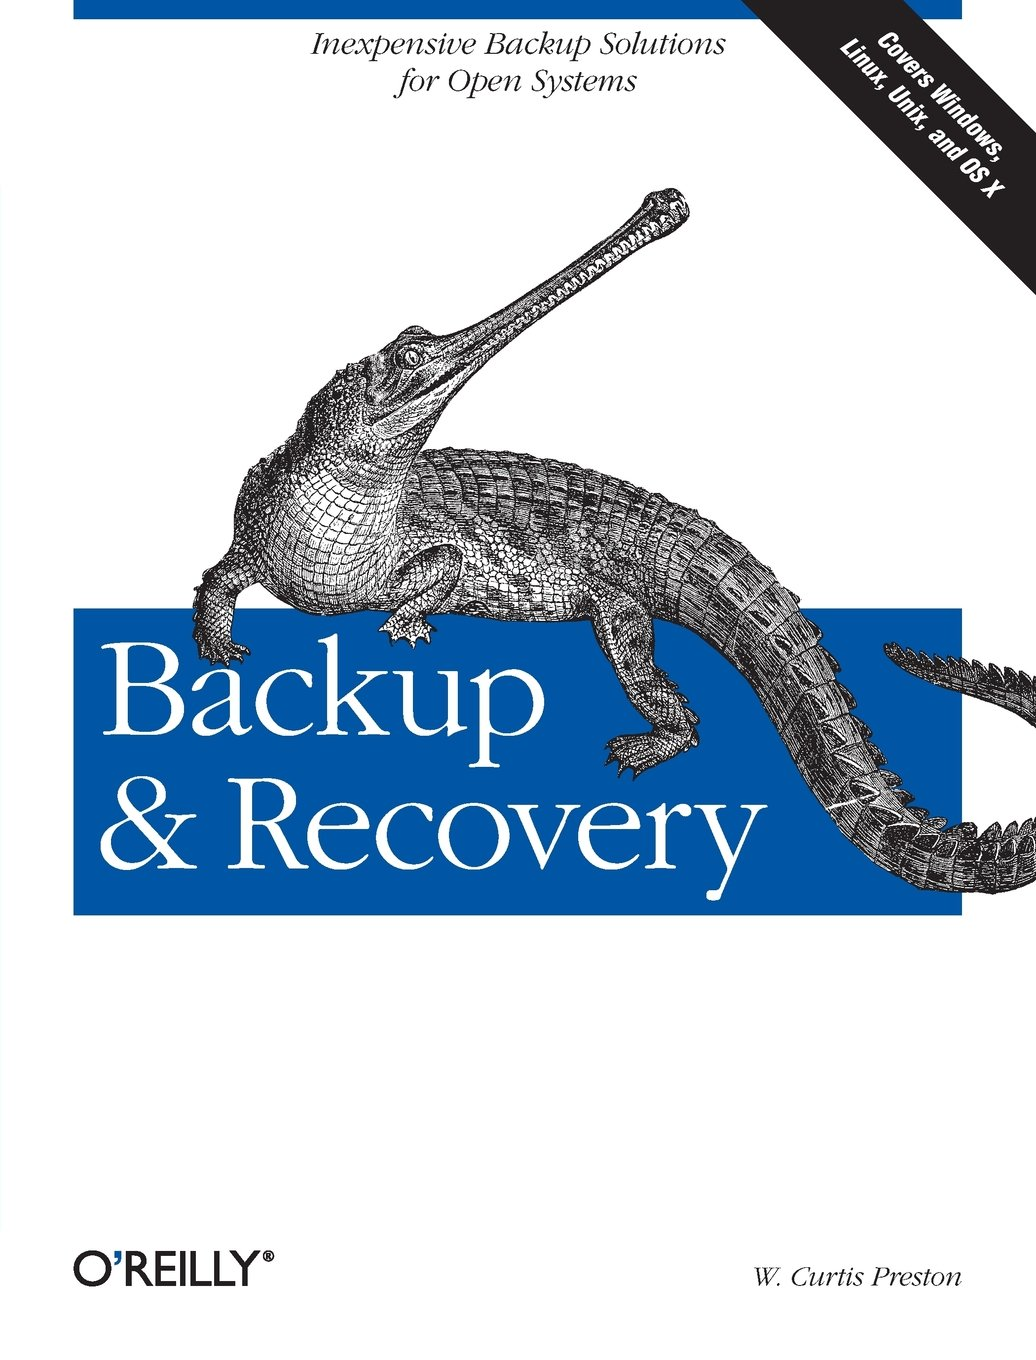 Read Online Backup & Recovery: Inexpensive Backup Solutions for Open Systems ebook